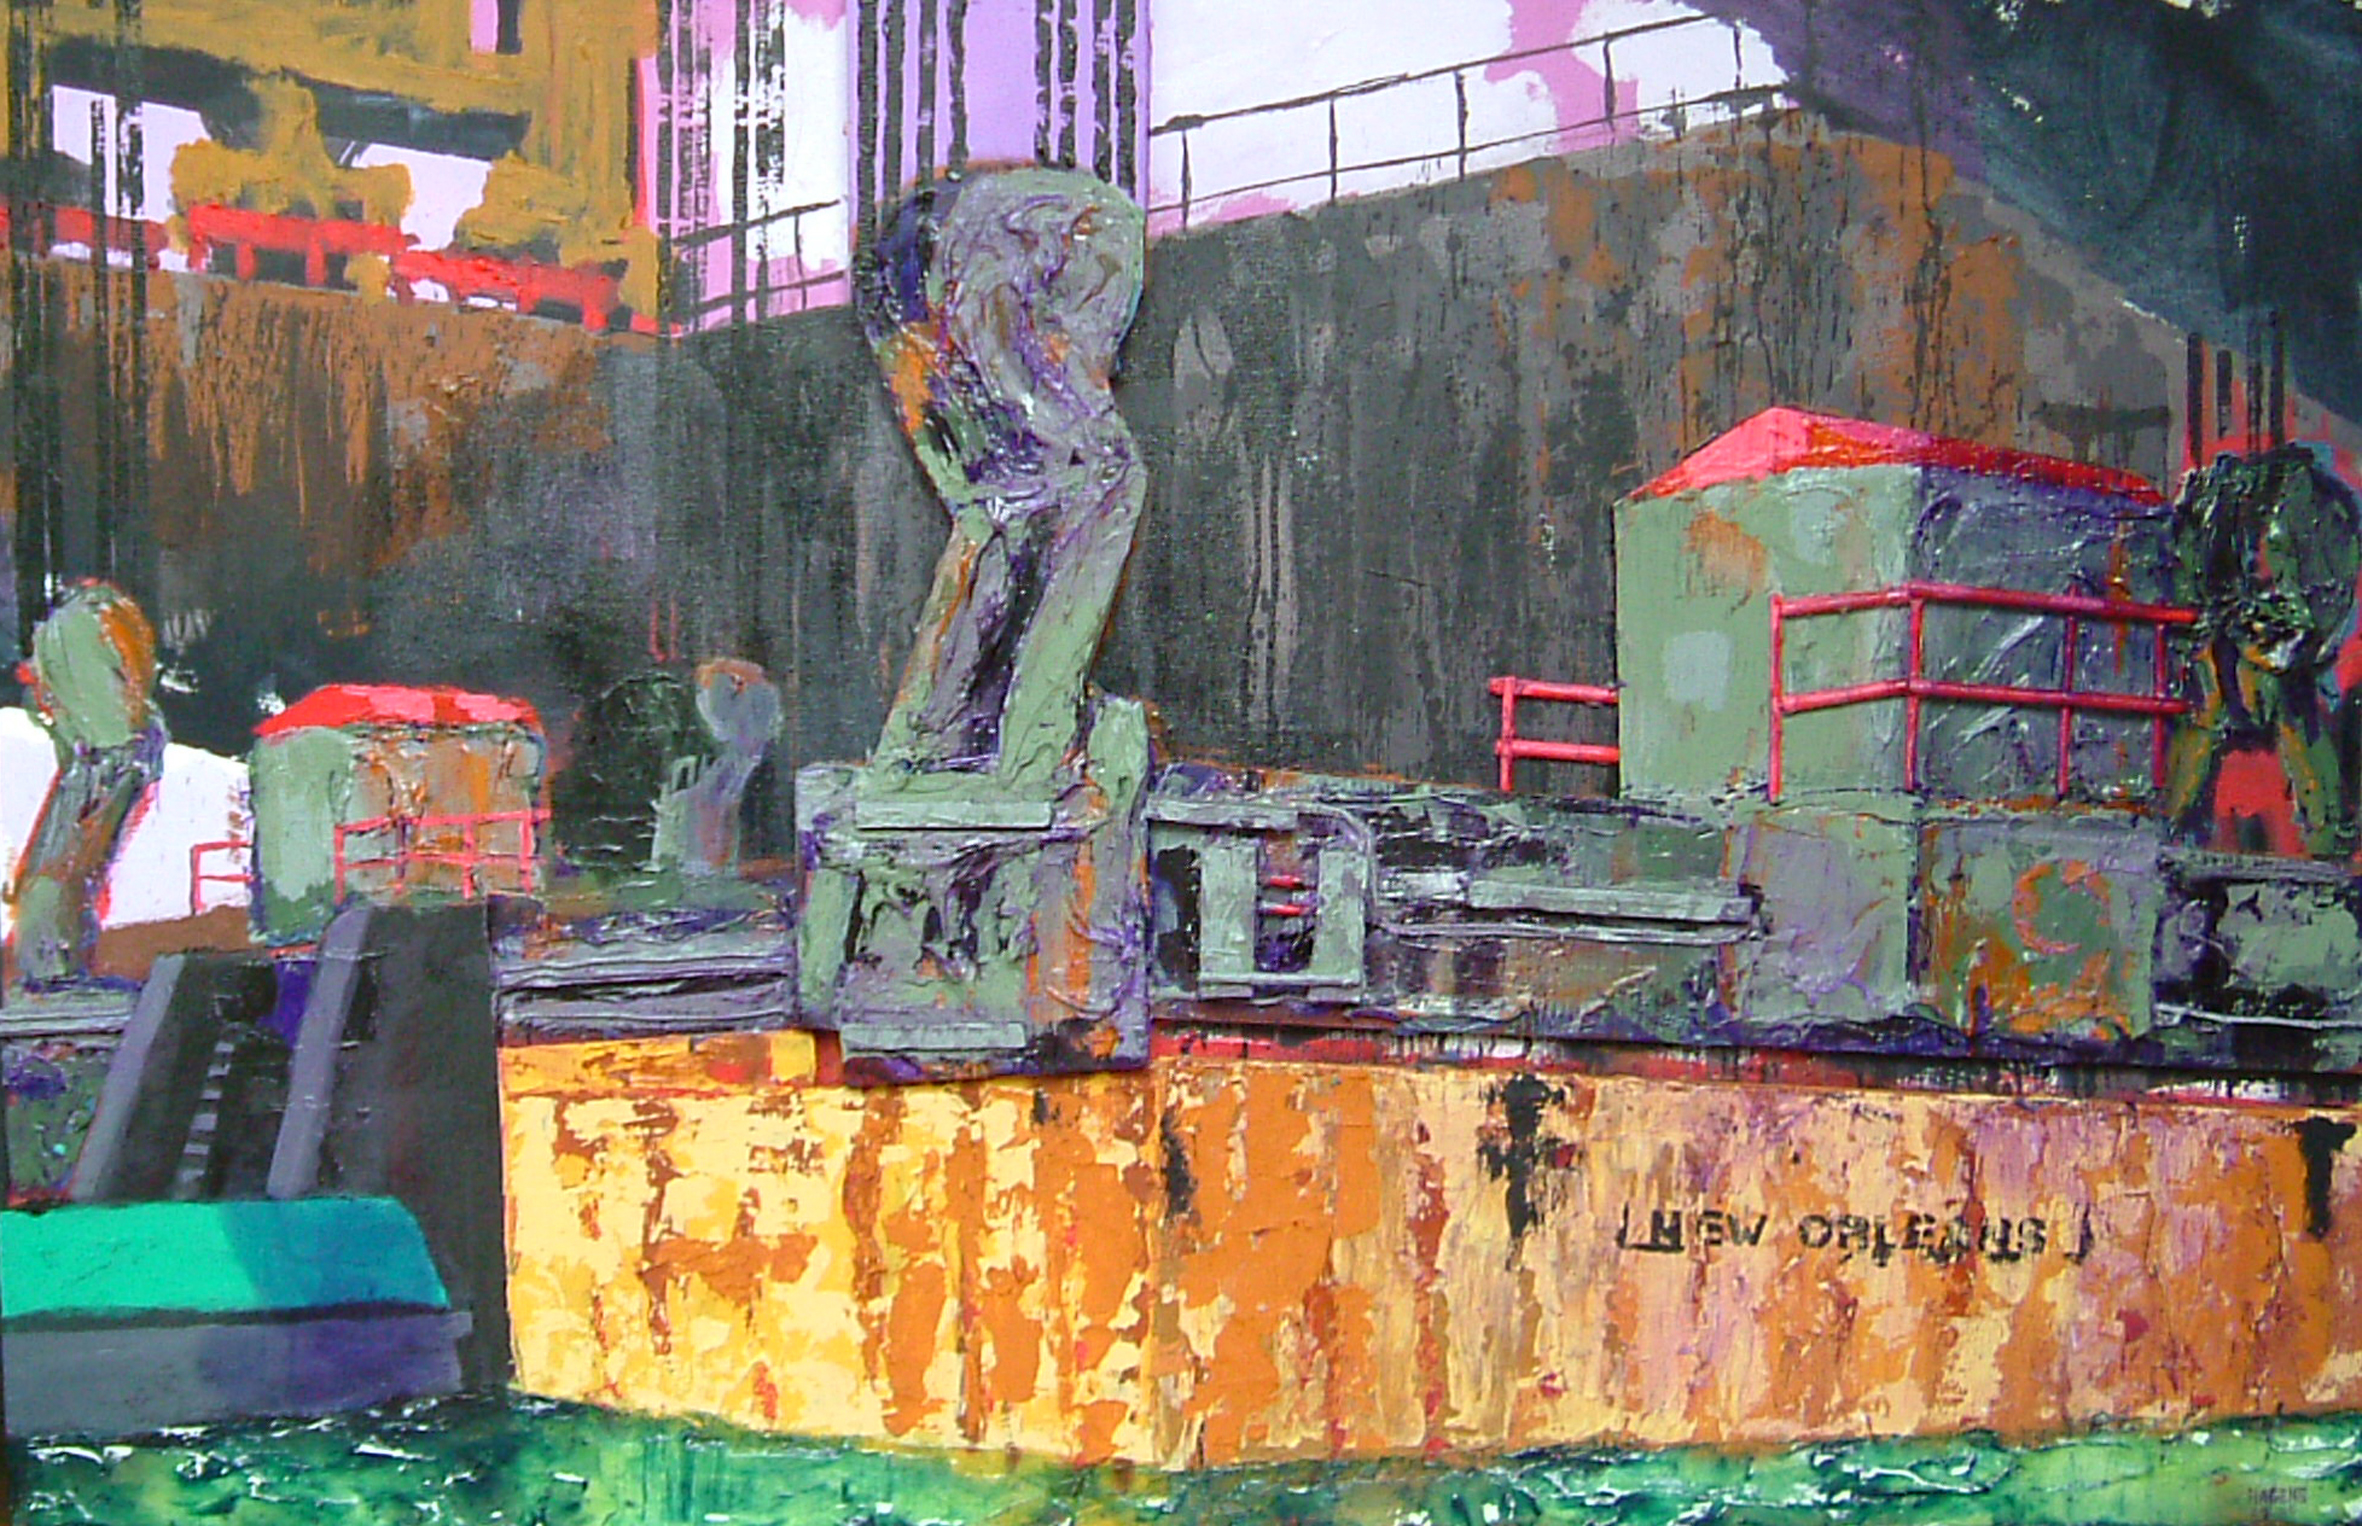 _shipping for new orleans_ 1.30 x 2.00m_hagens_2006.jpg